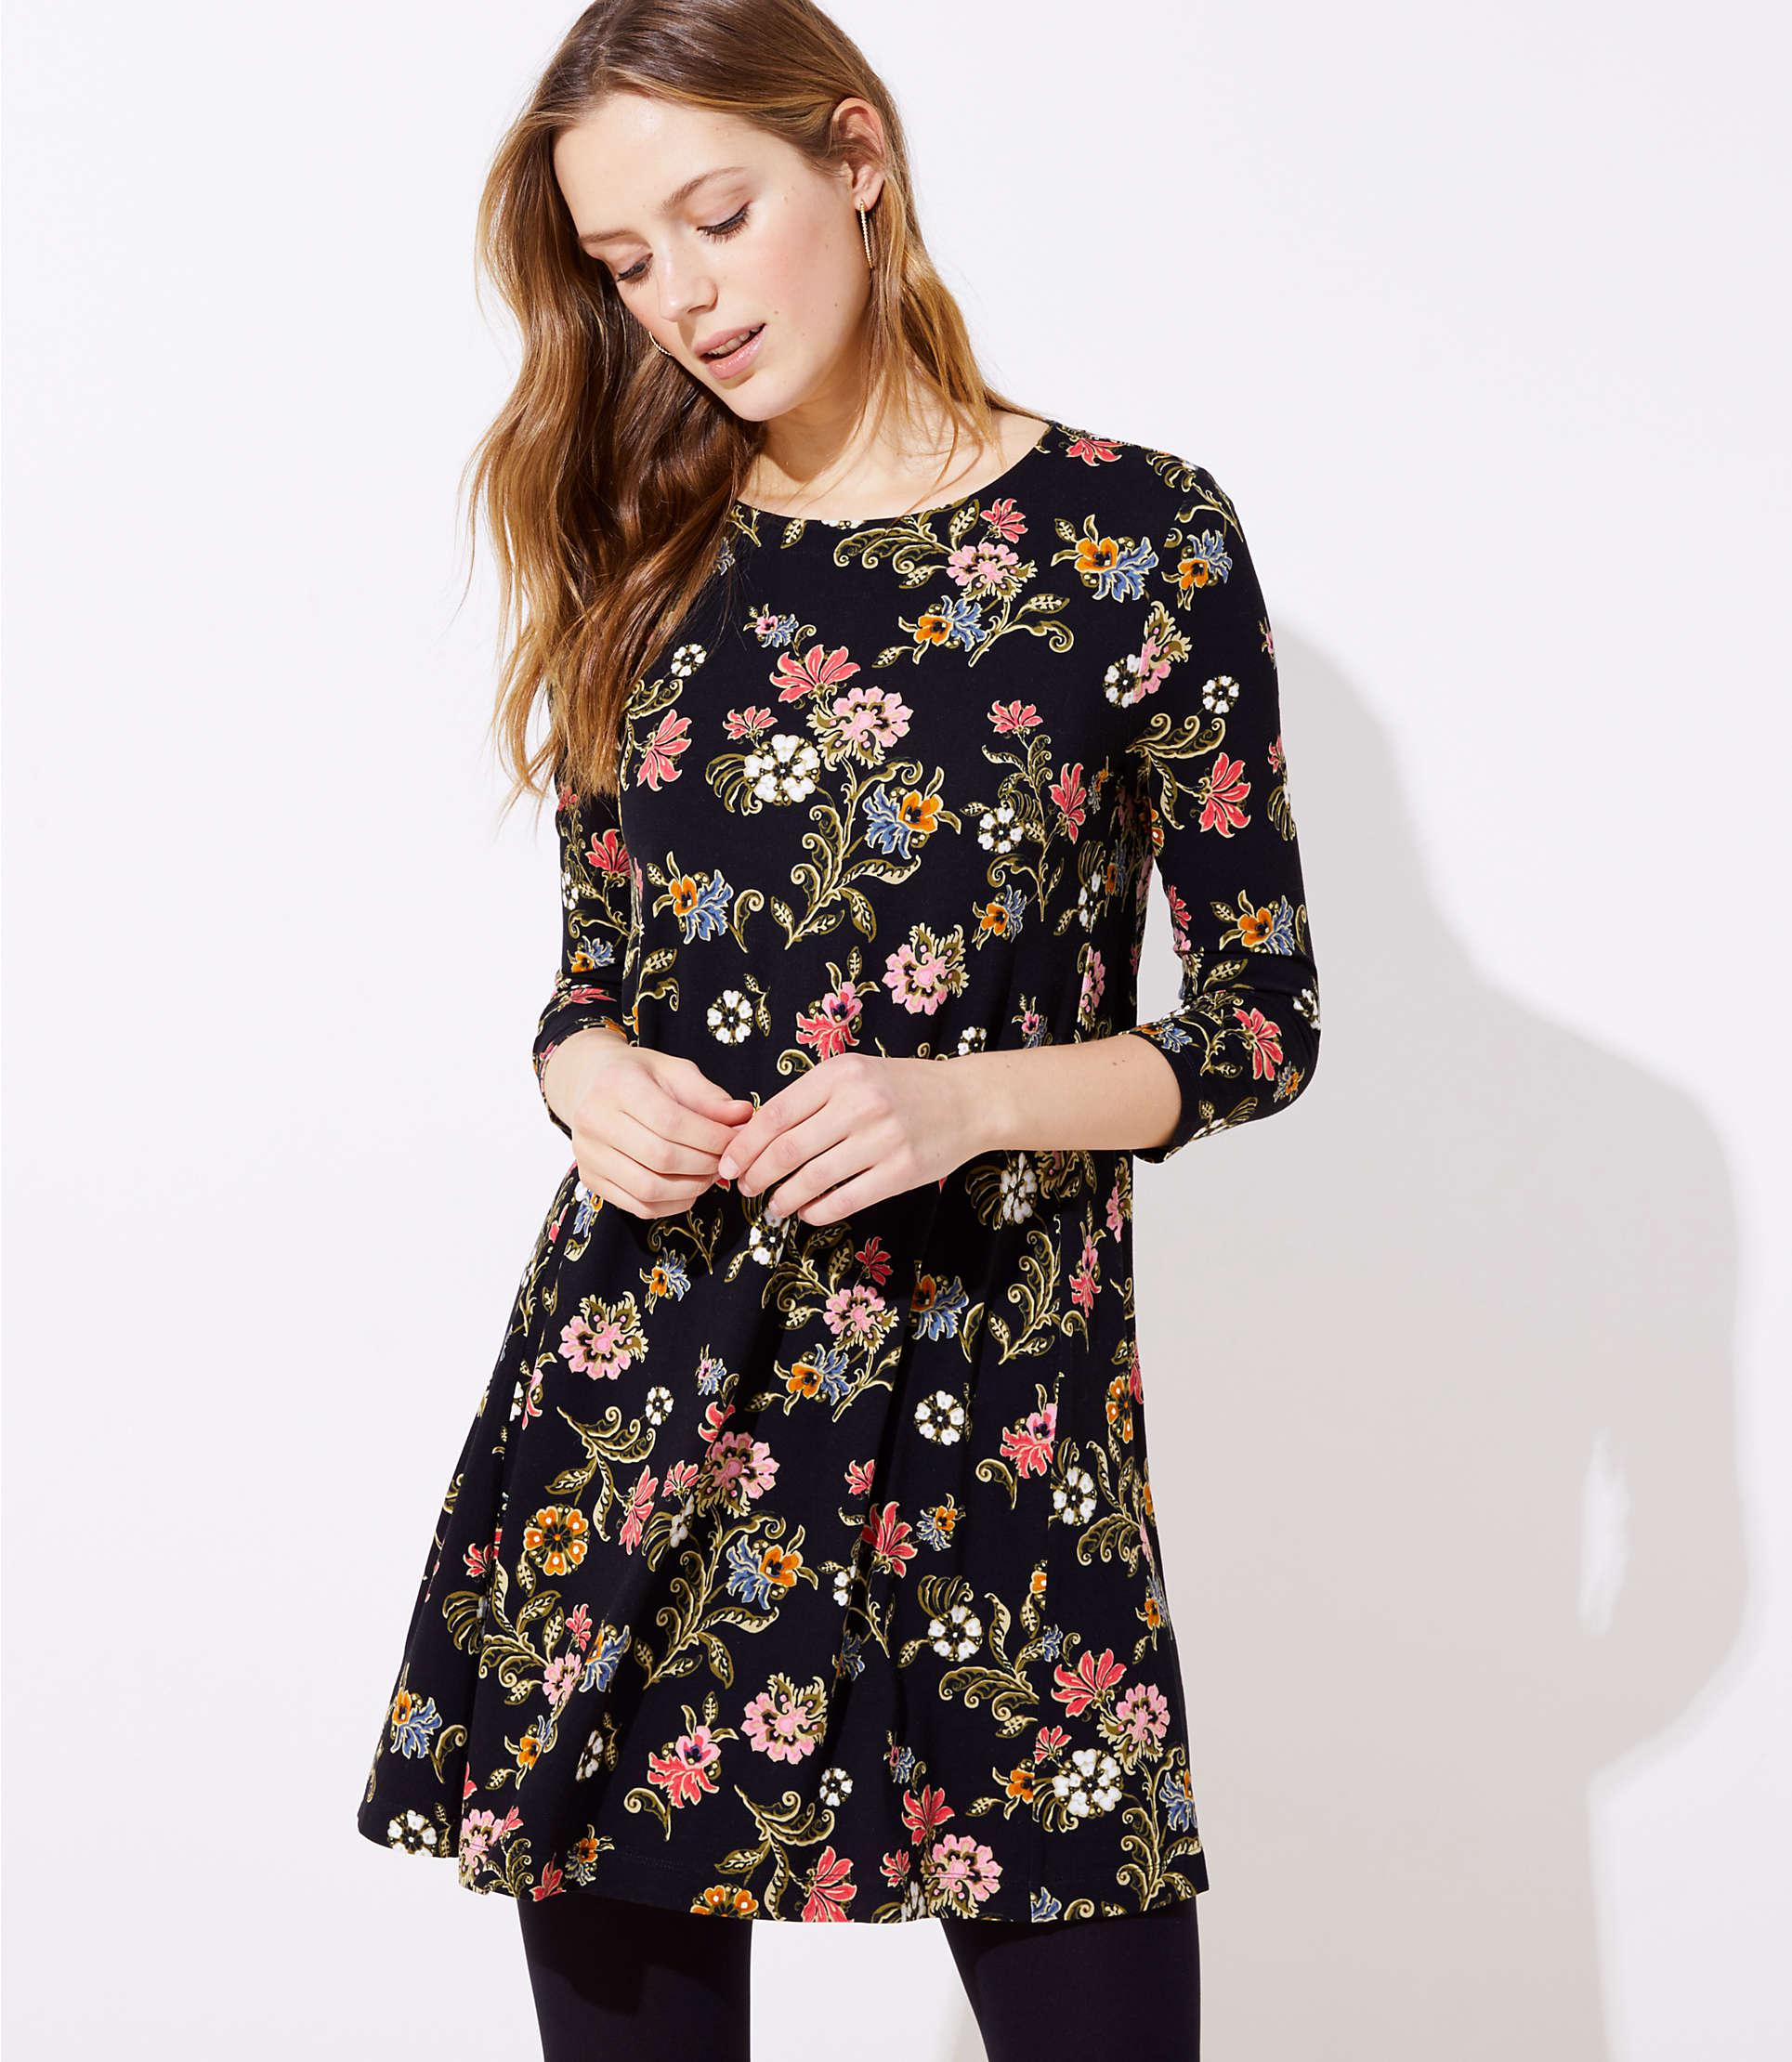 eab203ada882 LOFT Floral 3/4 Sleeve Swing Dress in Black - Save 42% - Lyst